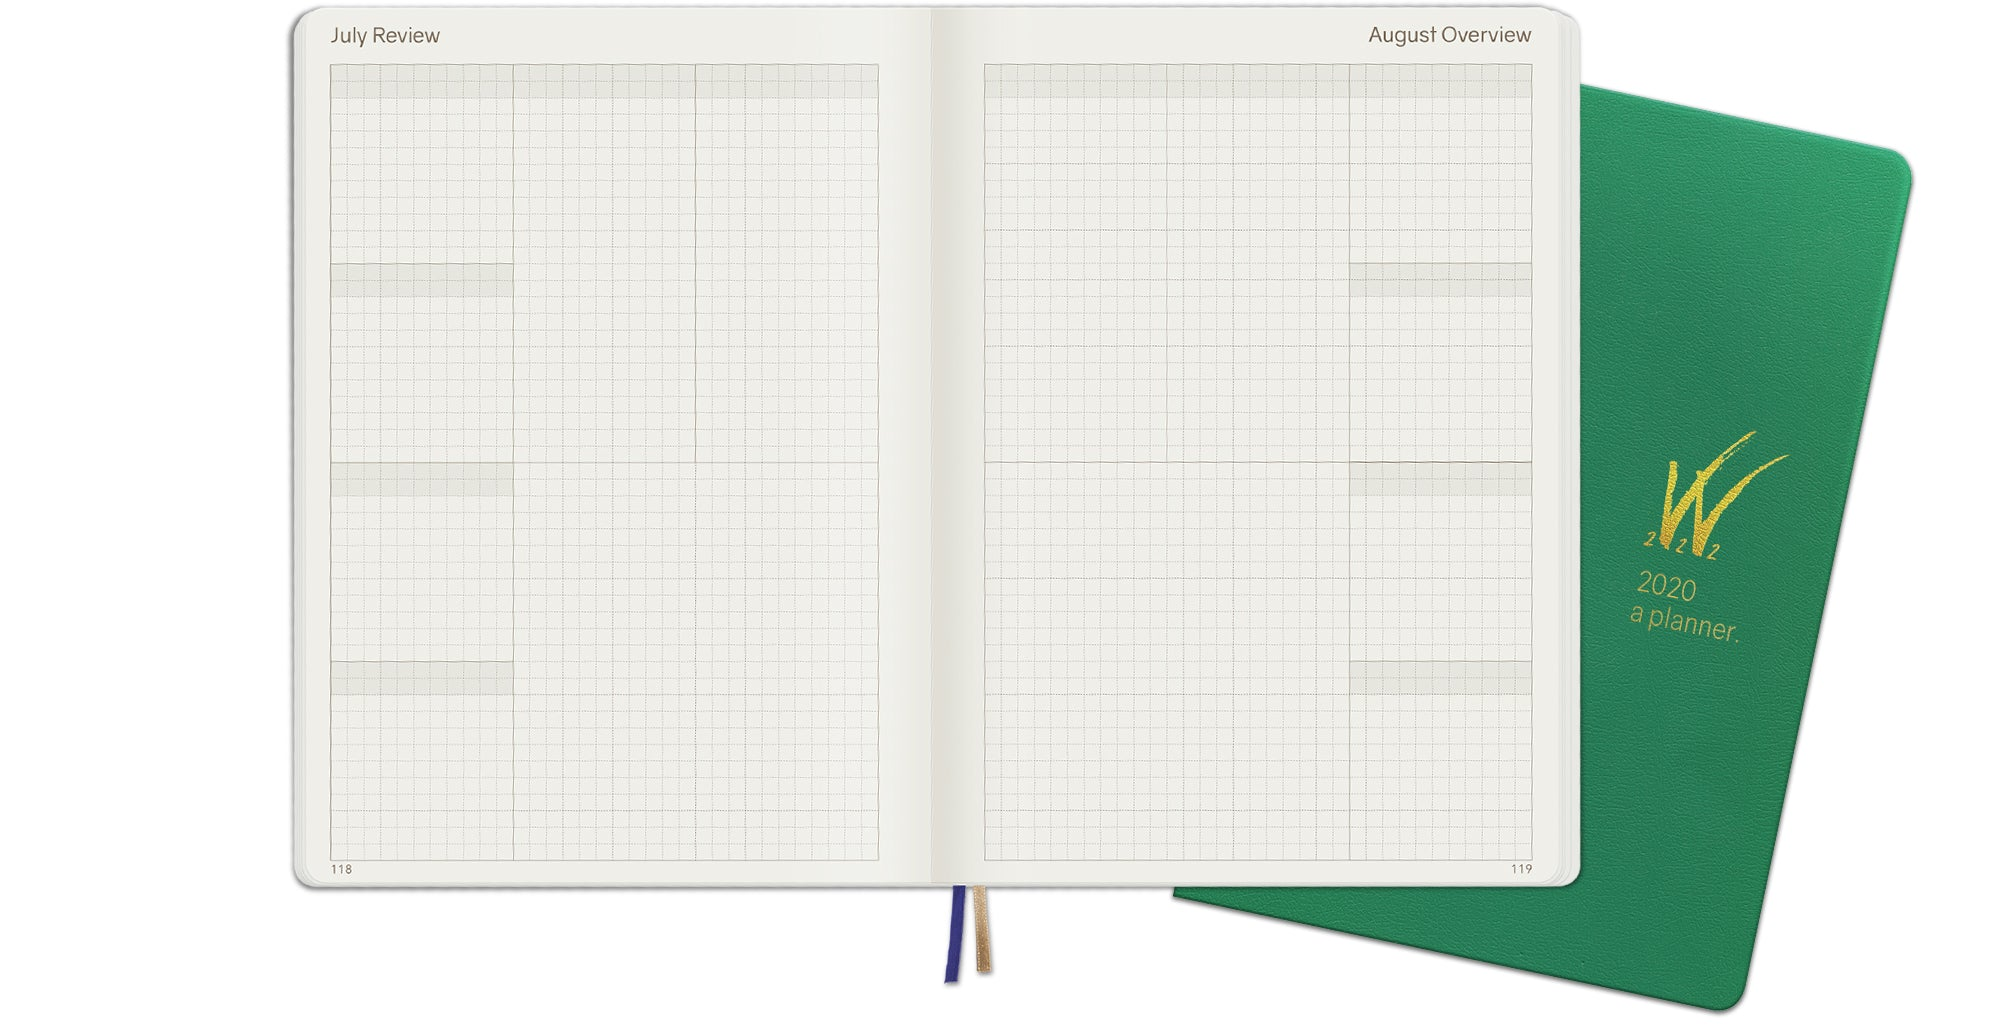 2020 A5 Tomoe River Paper Weekly Planner Month Review and Month Overview Layout